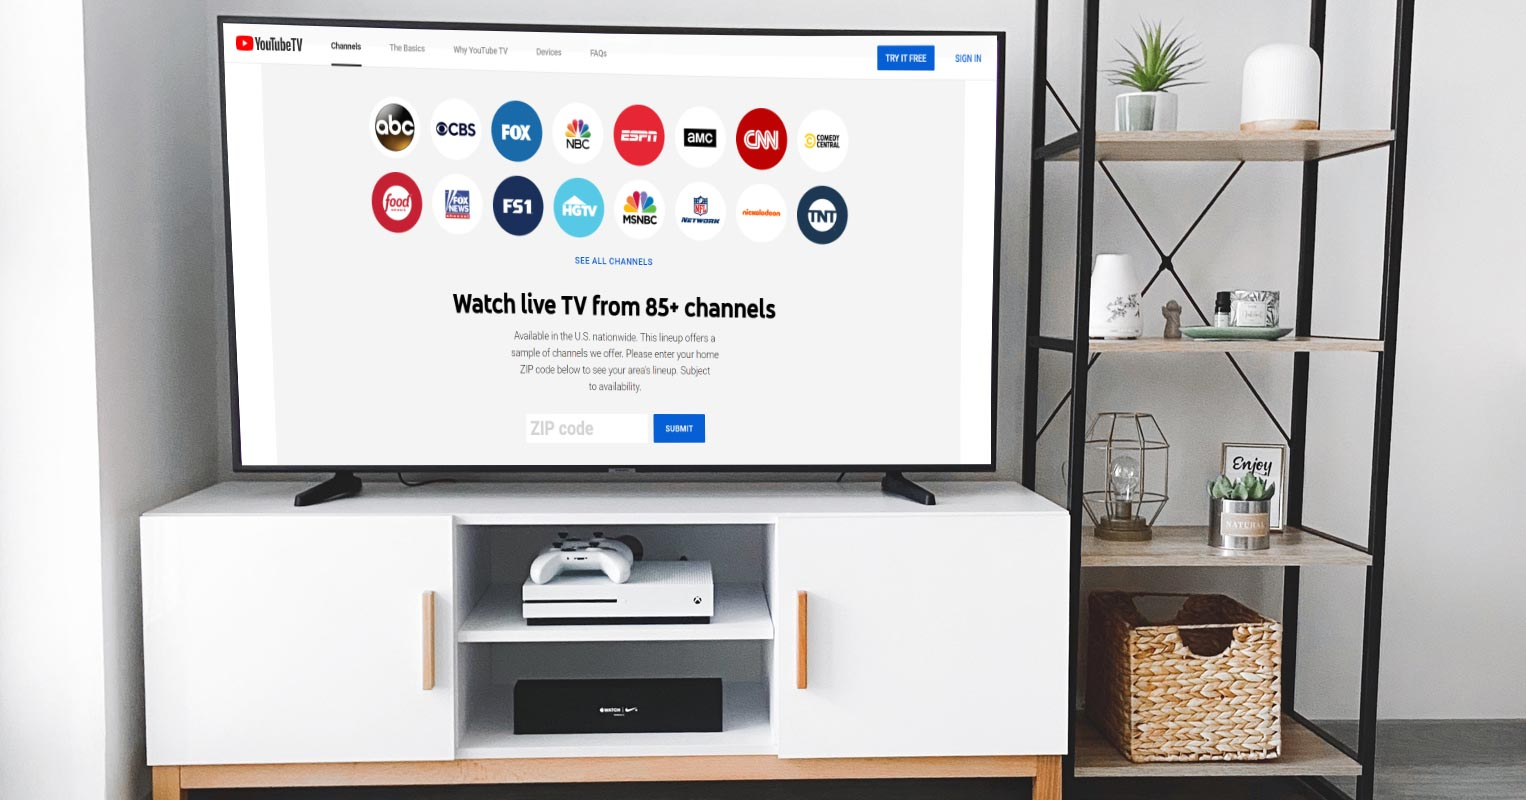 YouTube TV Welcome Screen on Android TV